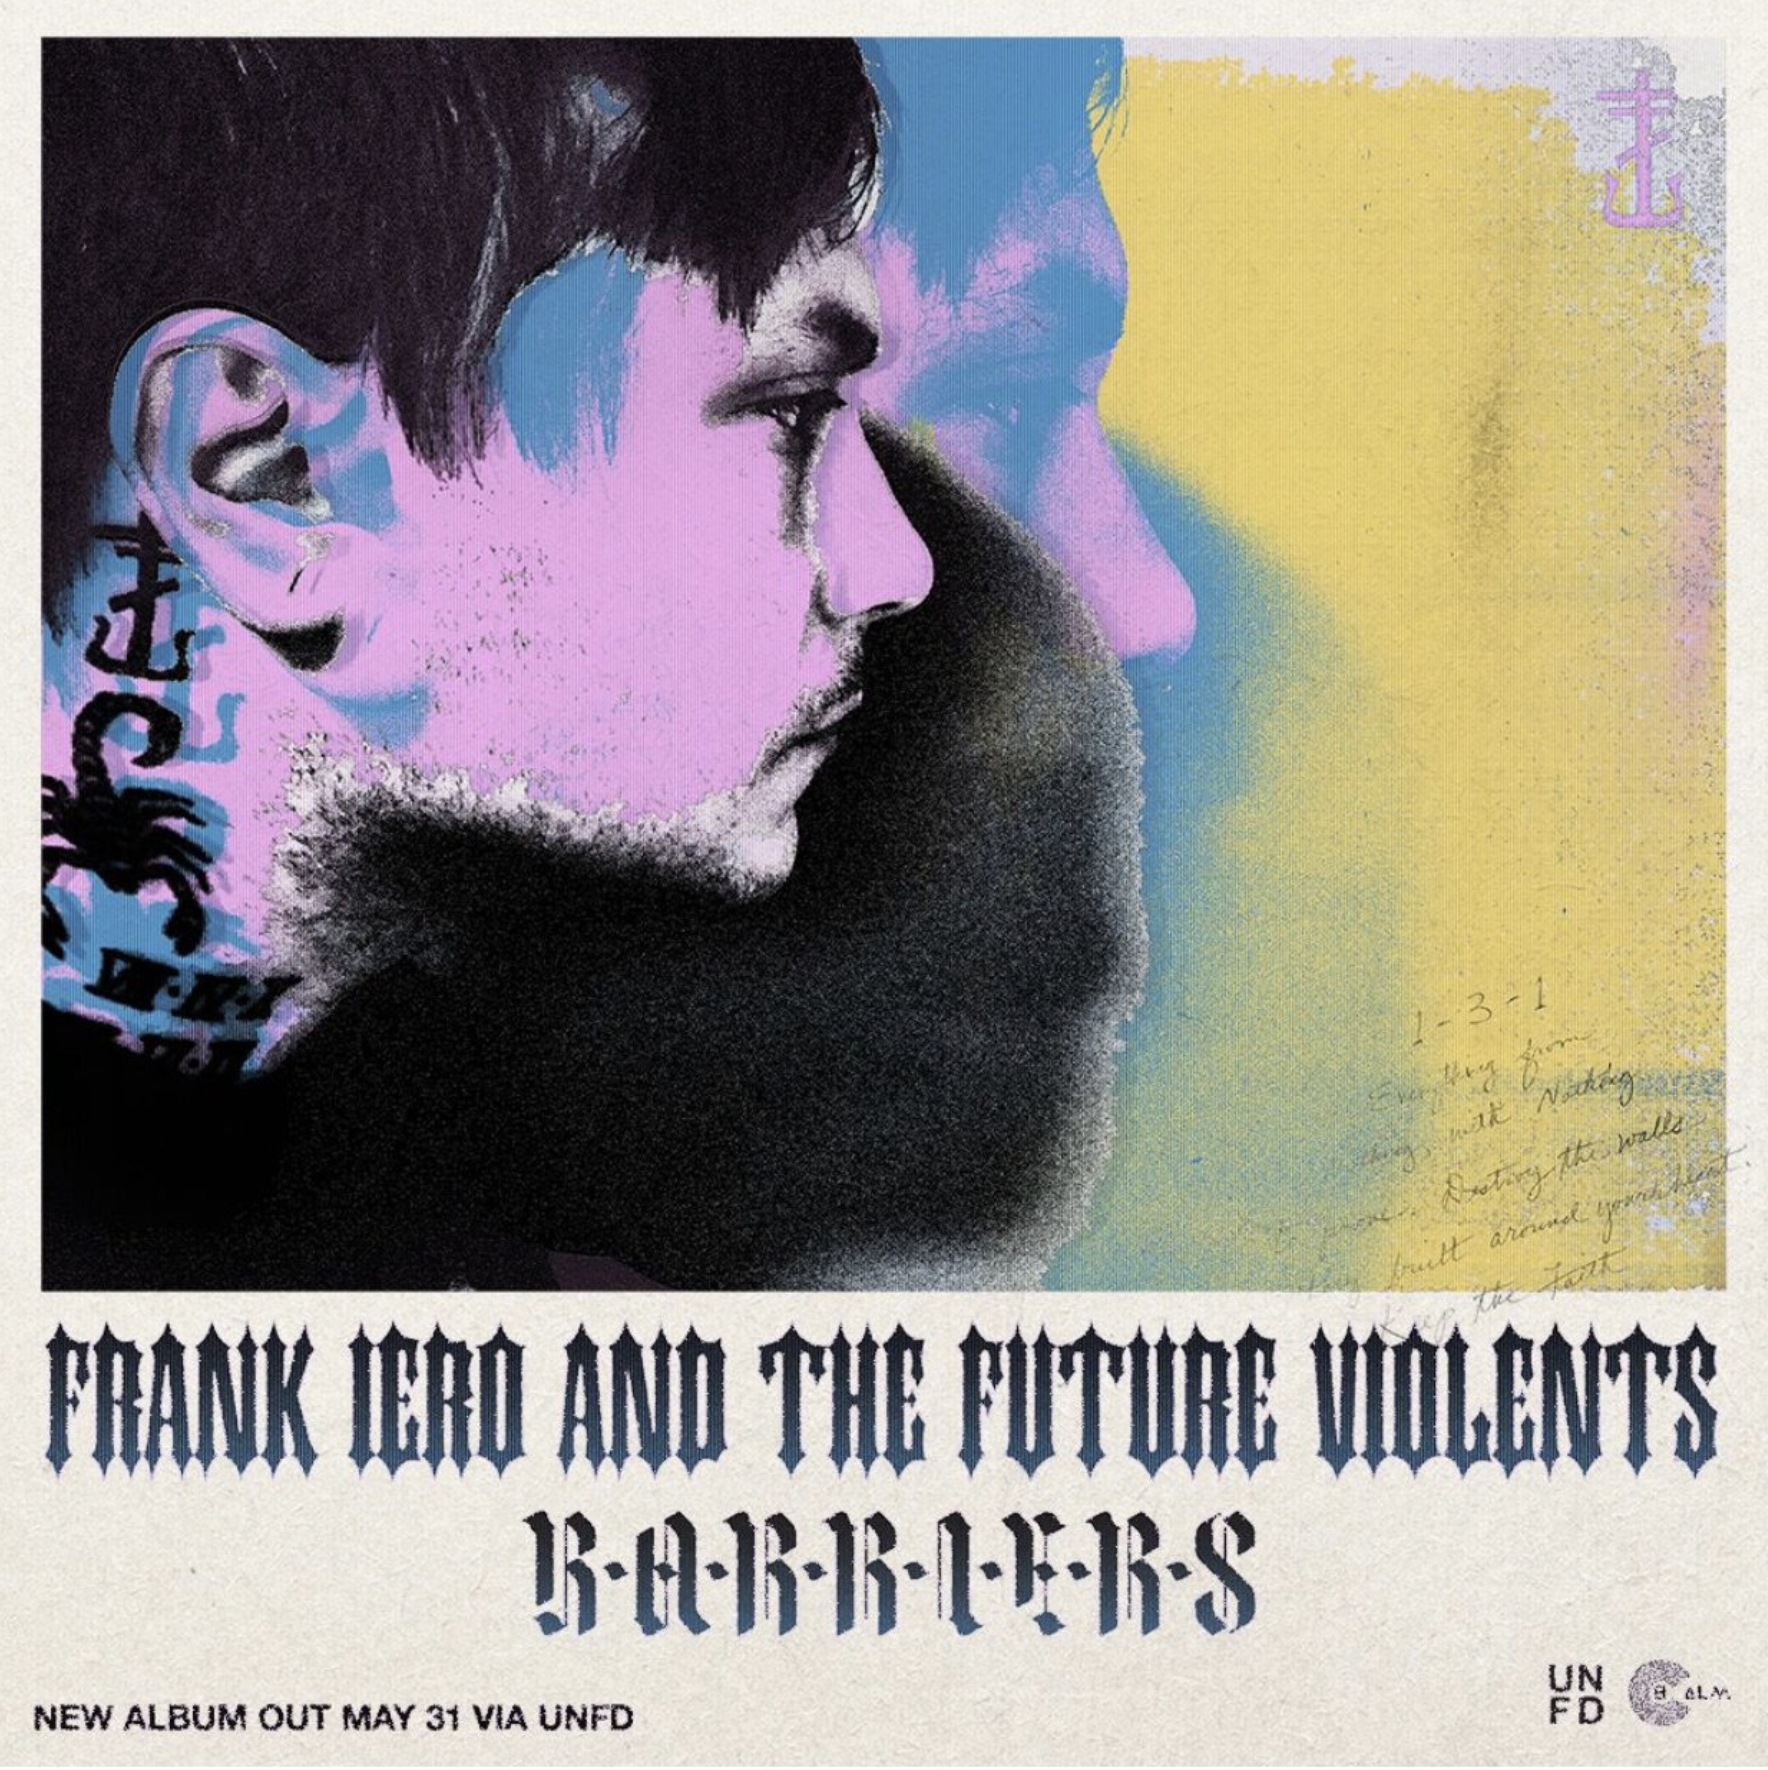 frank iero and the future violents, barriers